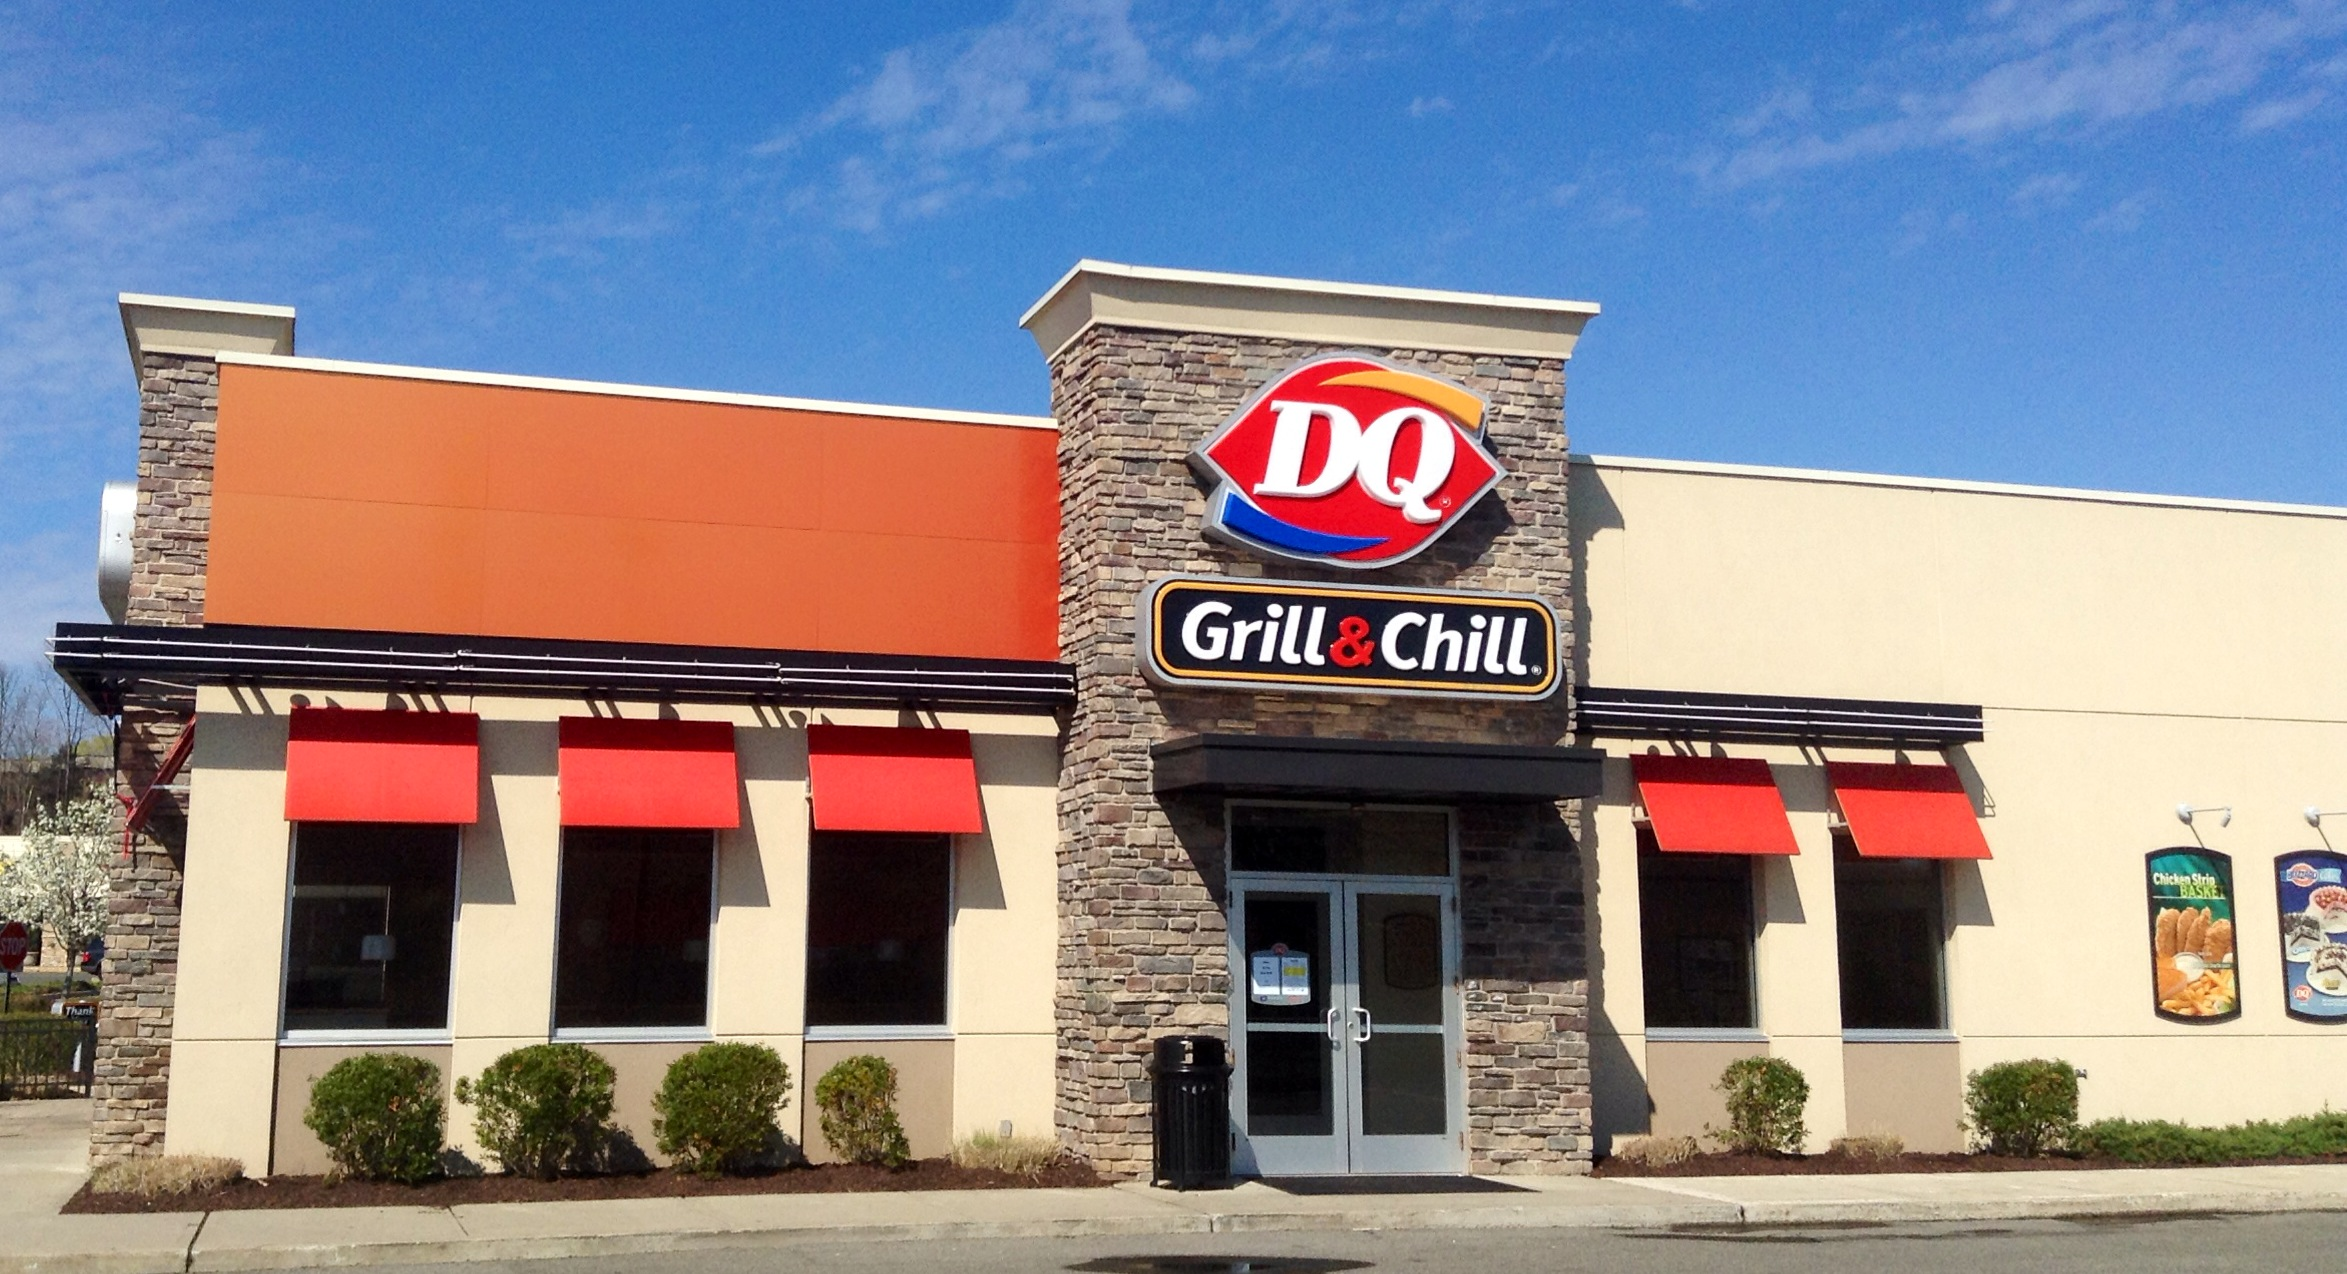 Dq Grill Chill Restaurant East Harper Street Richland Ms